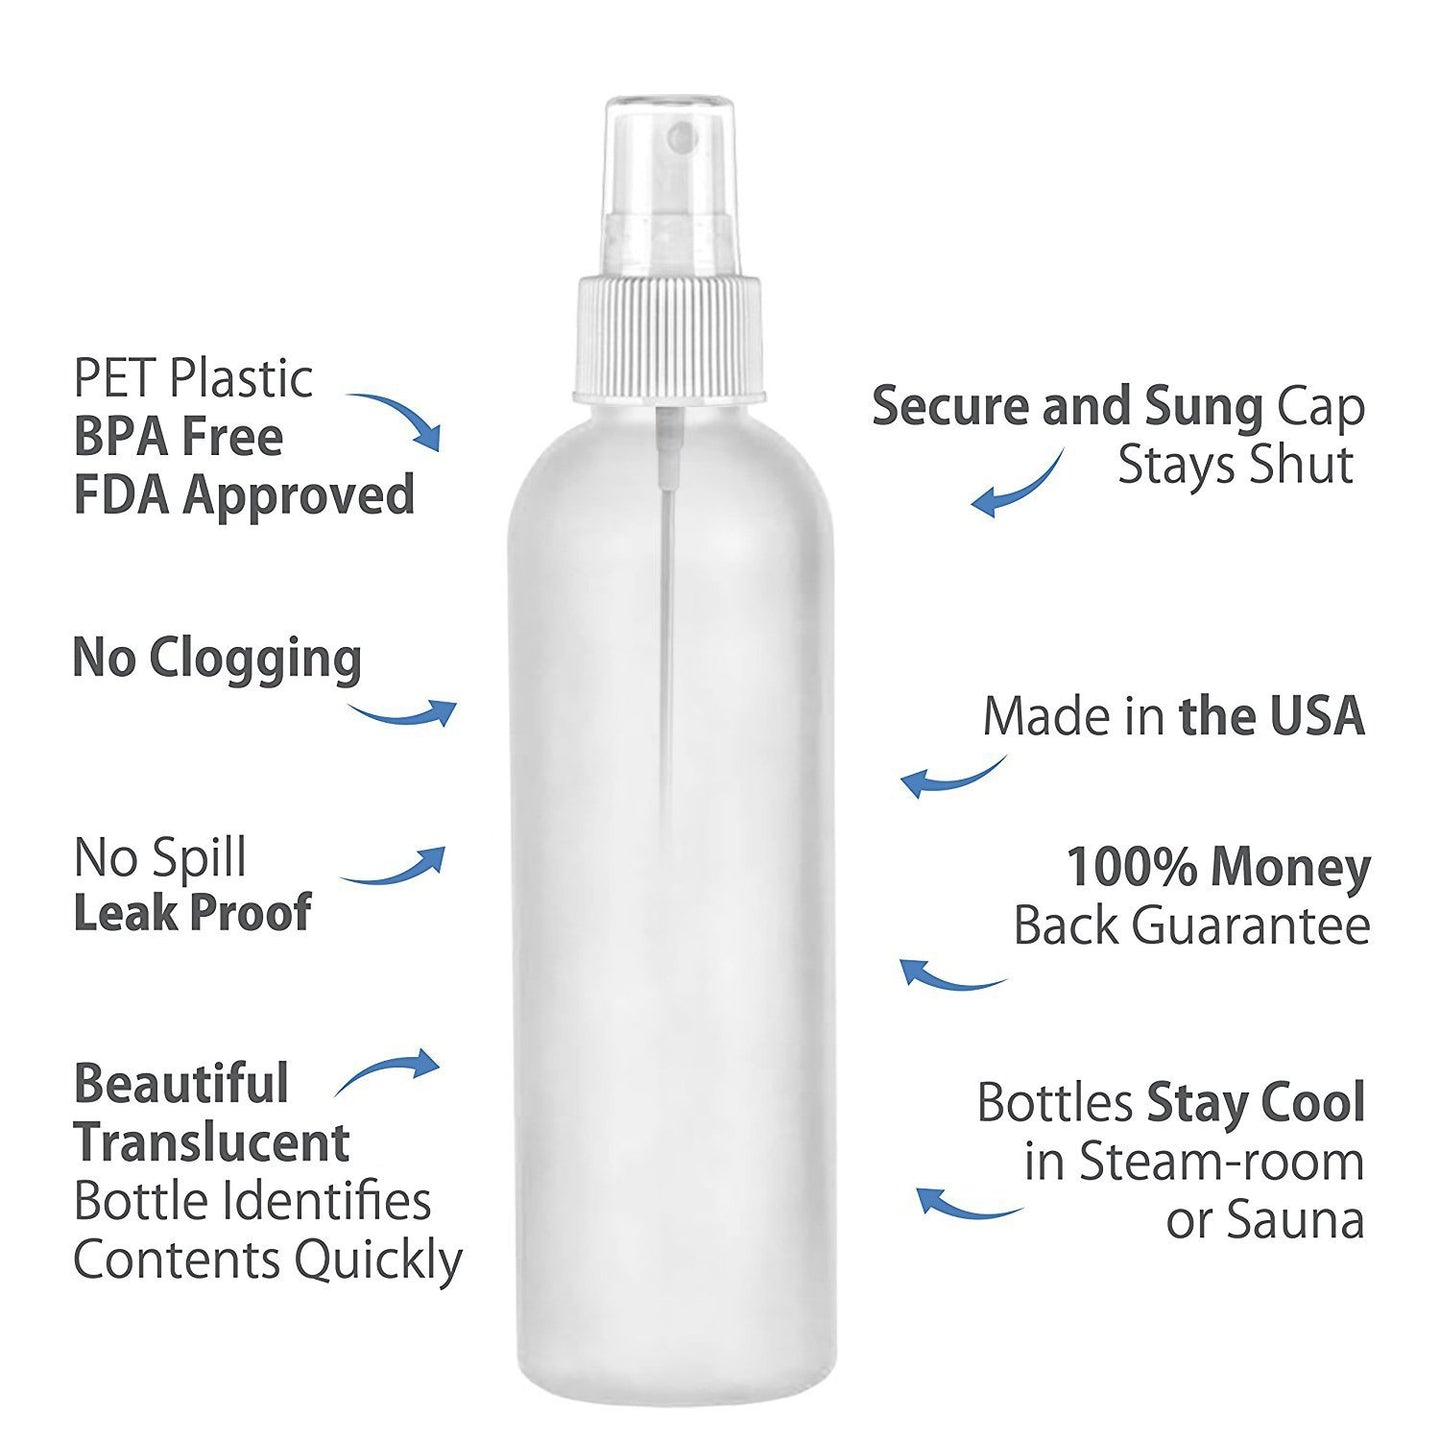 MoYo Natural Labs 8 oz Spray Bottles Fine Mist Empty Travel Containers, BPA Free PET Plastic for Essential Oils and Liquids/Cosmetics (Pack of 100, HDPE Translucent White)